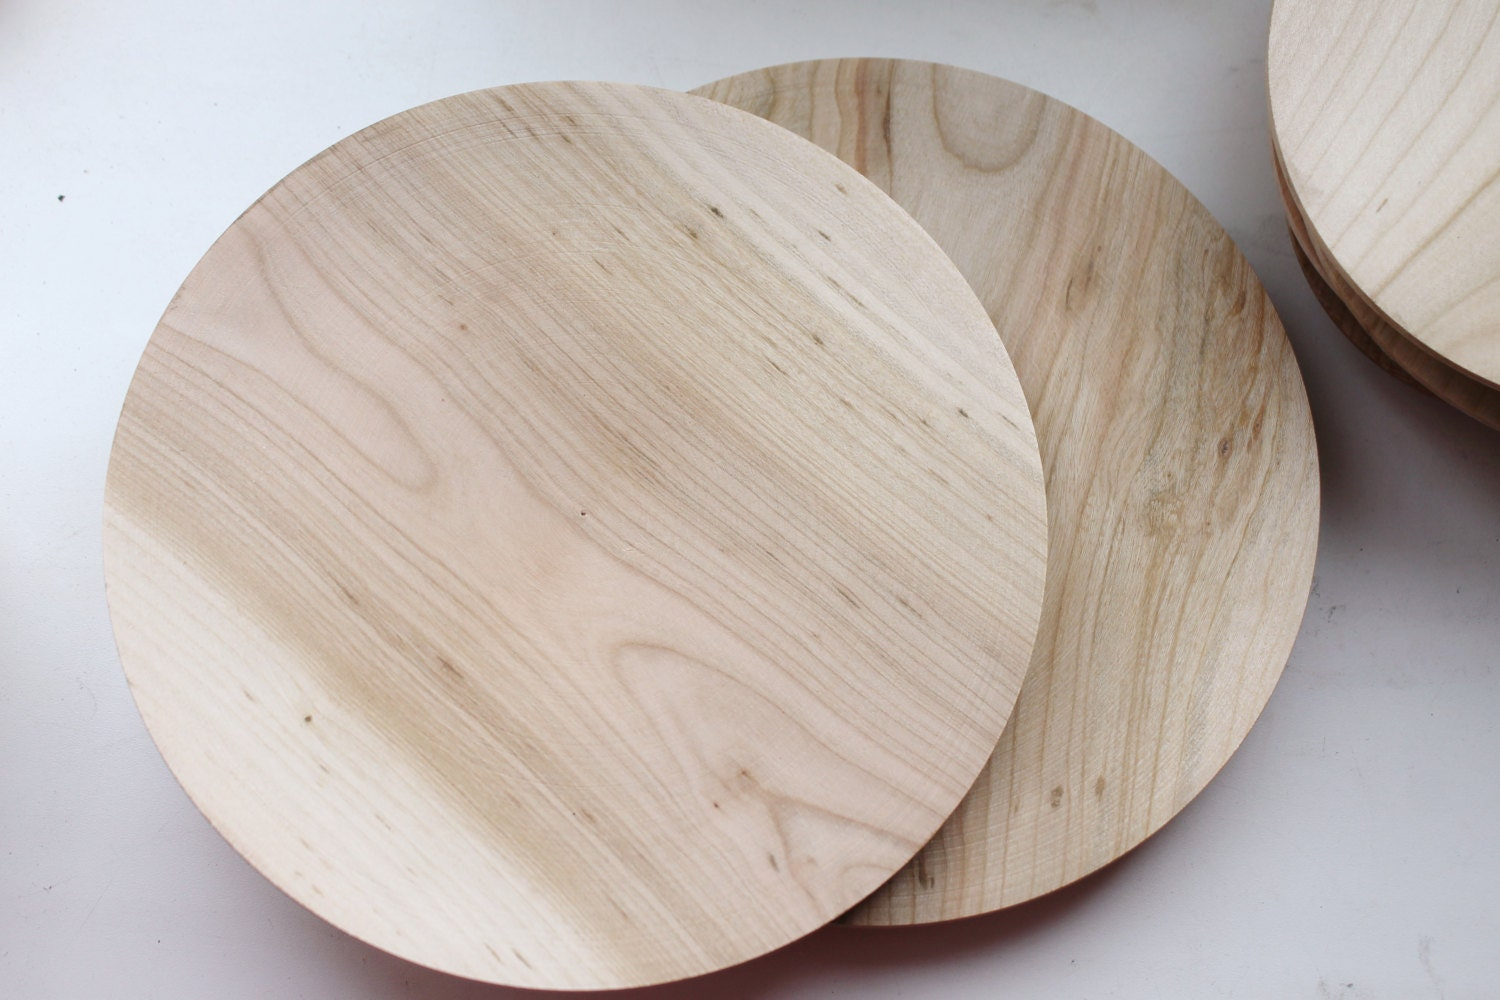 We have such great deals on wood plates, they are flying on the shelves! Come find the wood plates you are looking for.